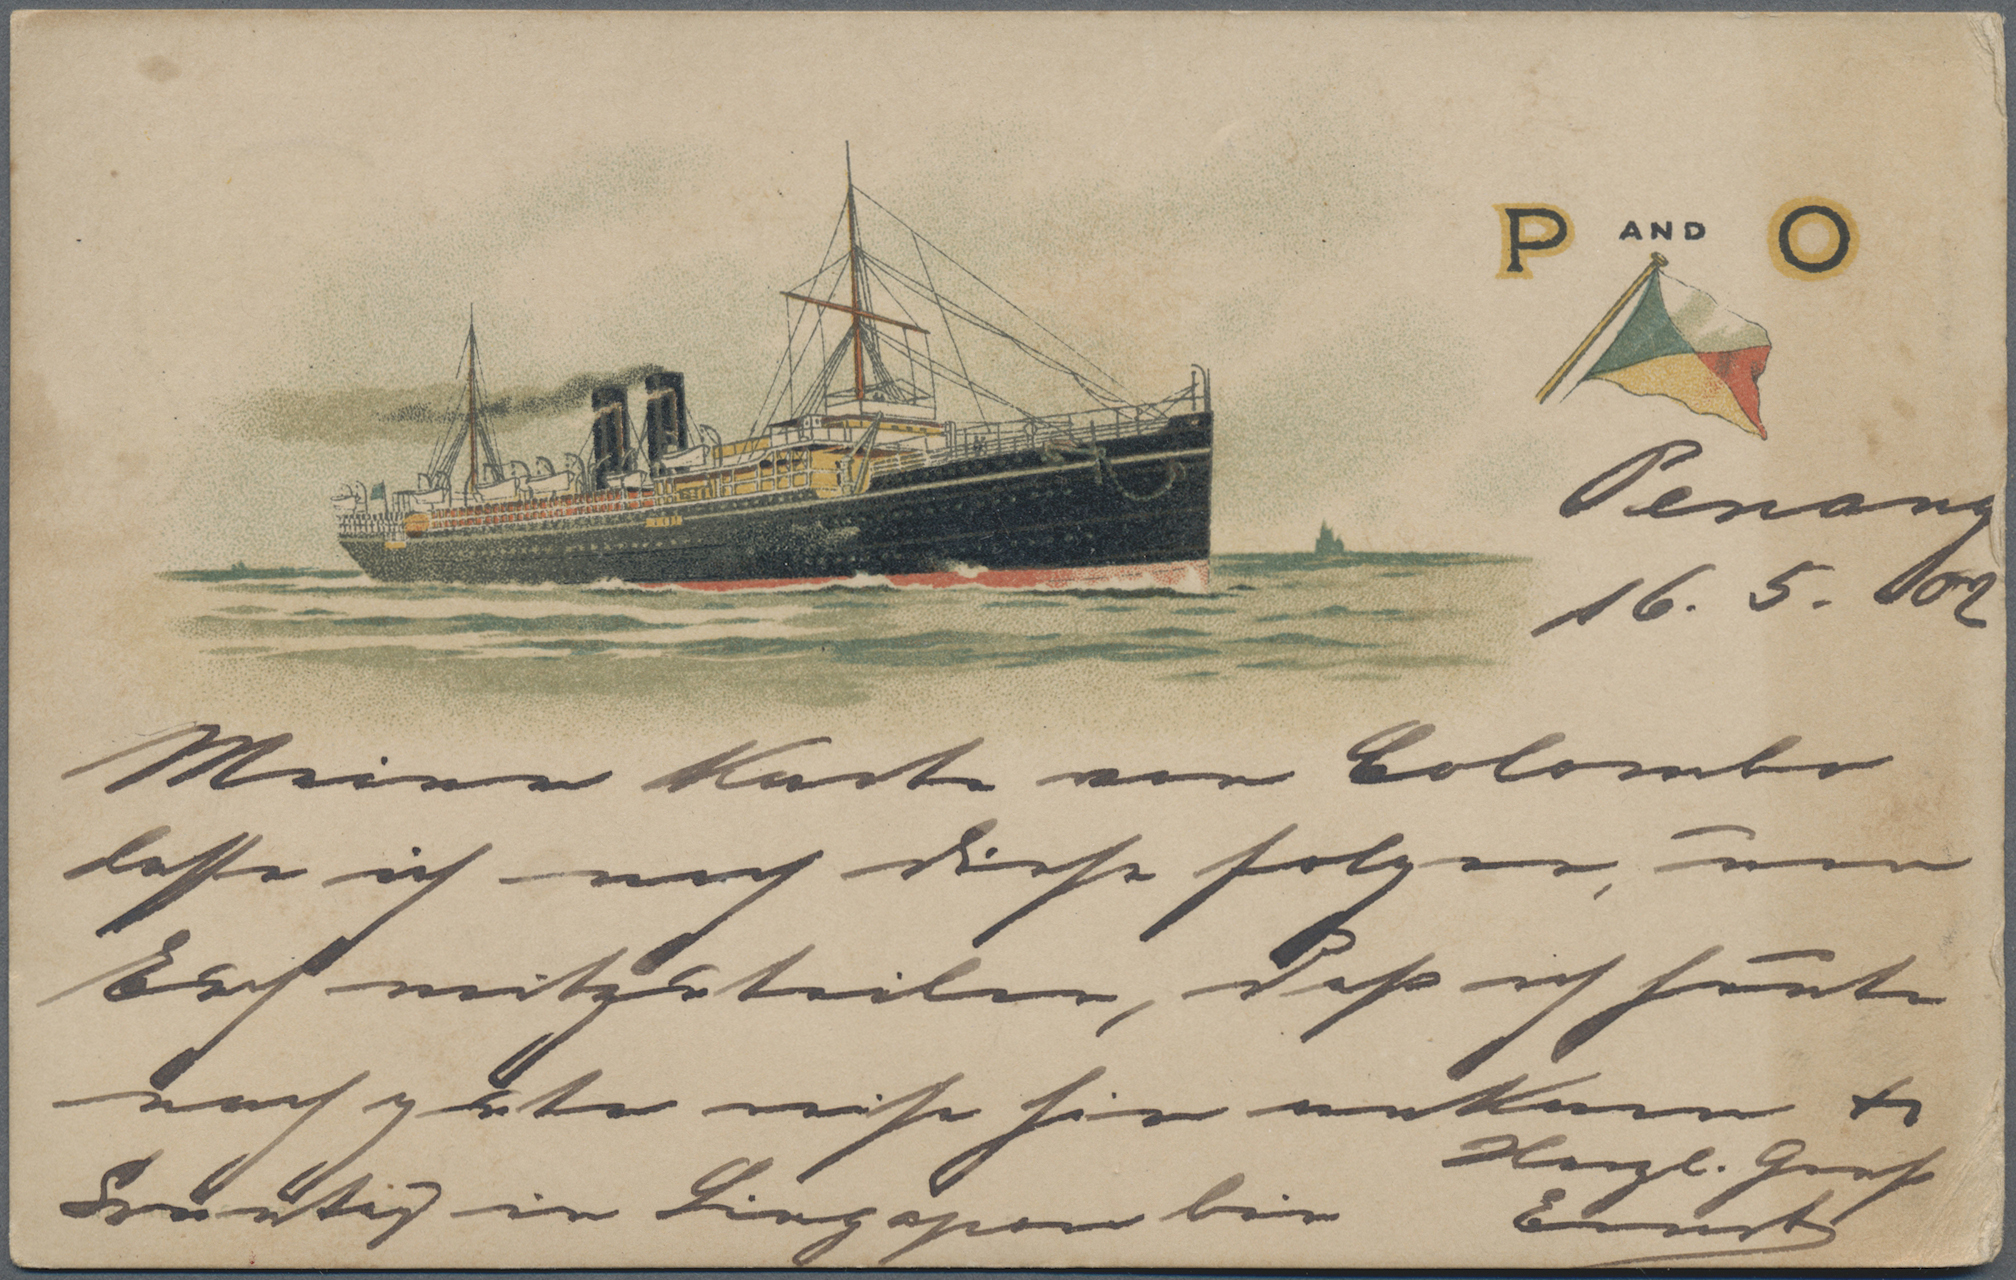 Lot 17959 - schiffspost alle welt  -  Auktionshaus Christoph Gärtner GmbH & Co. KG Sale #49 Collections Overseas, Thematics, Europe, Germany/Estates